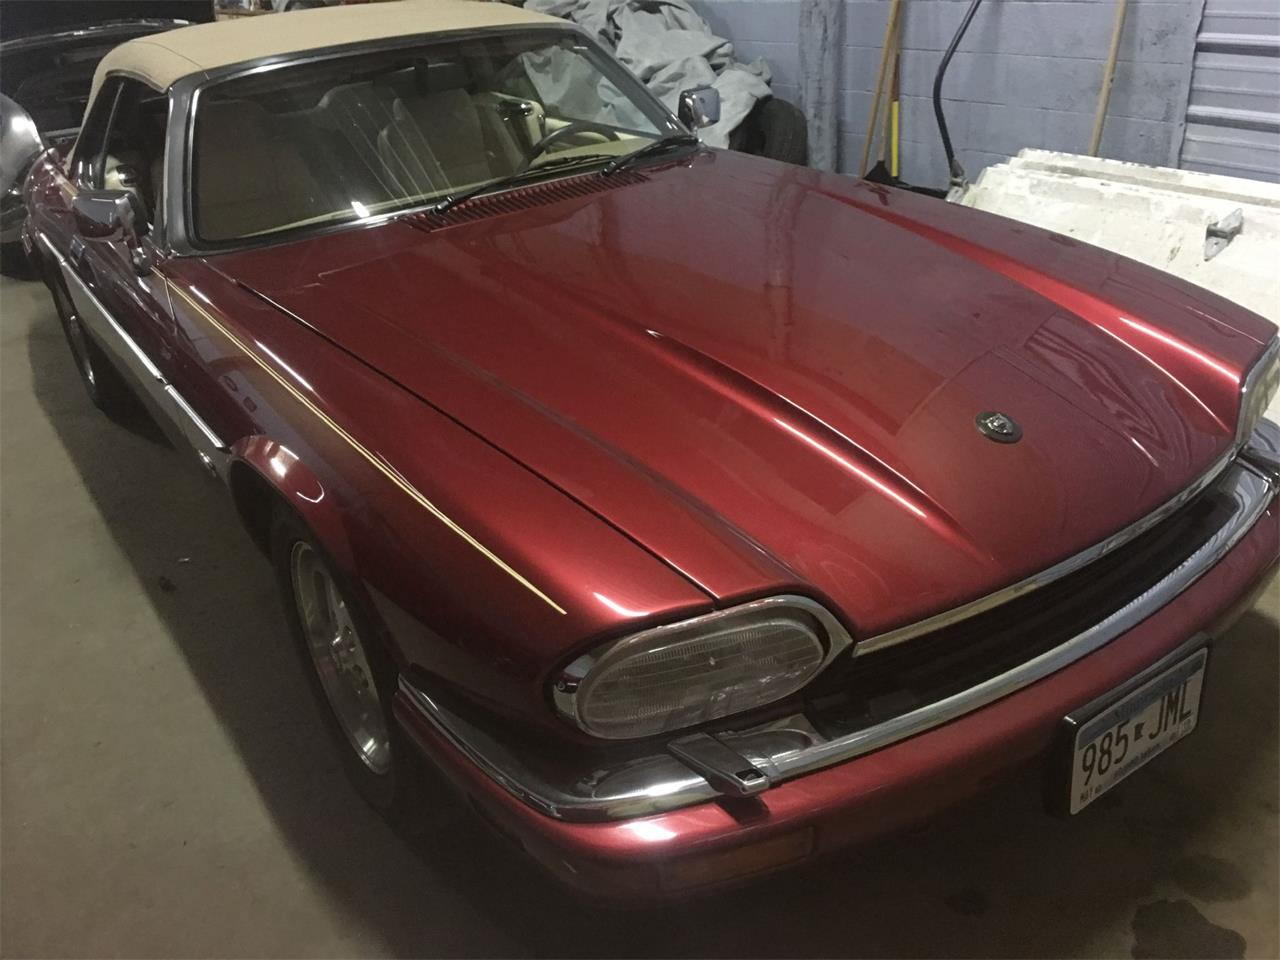 1995 Jaguar XJS for sale in Annandale, MN – photo 38